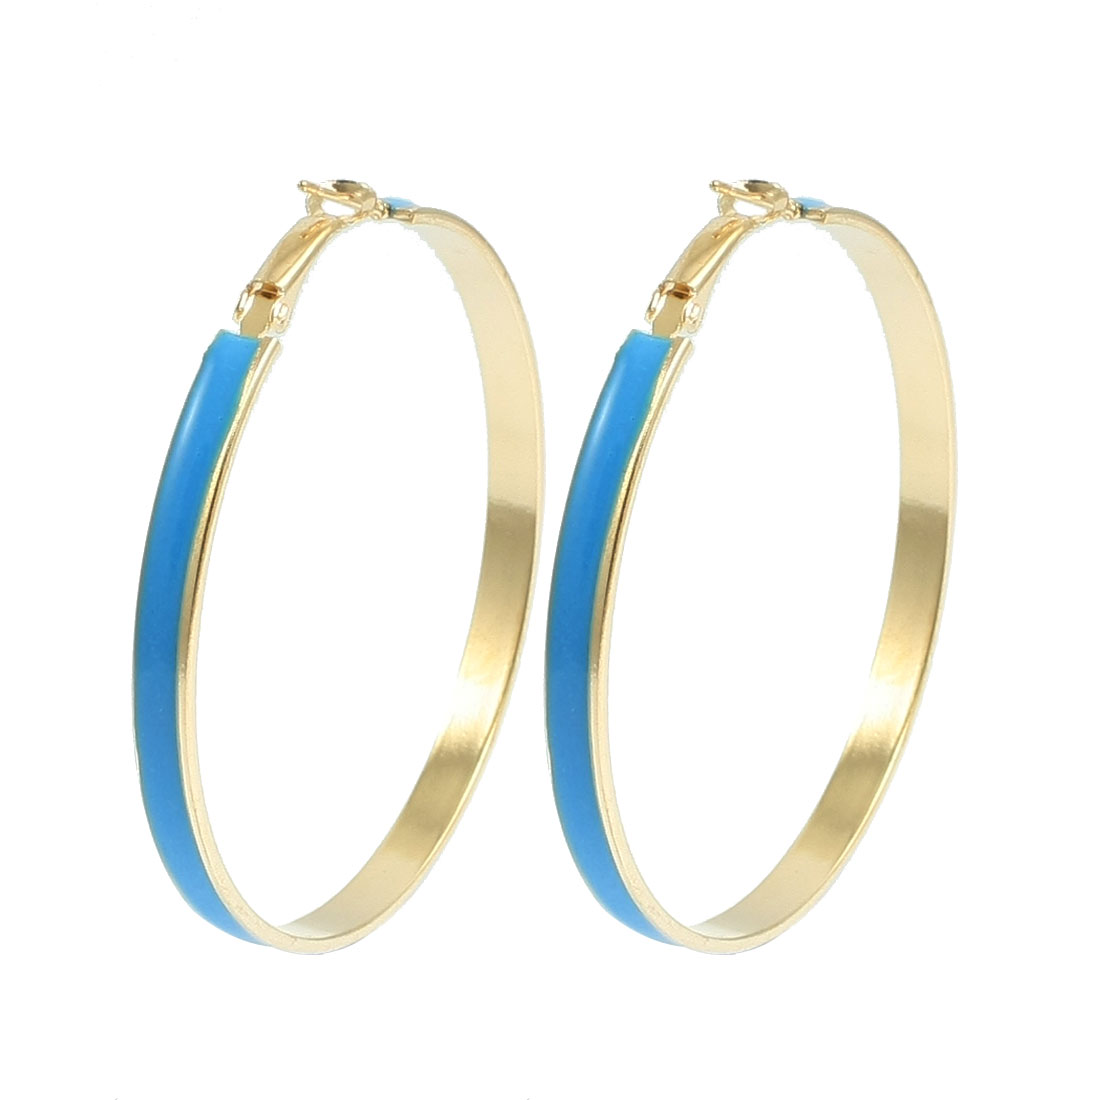 "2.4"" Dia Blue Gold Tone Metal Round Hoop Earrings Pair for Ladies"